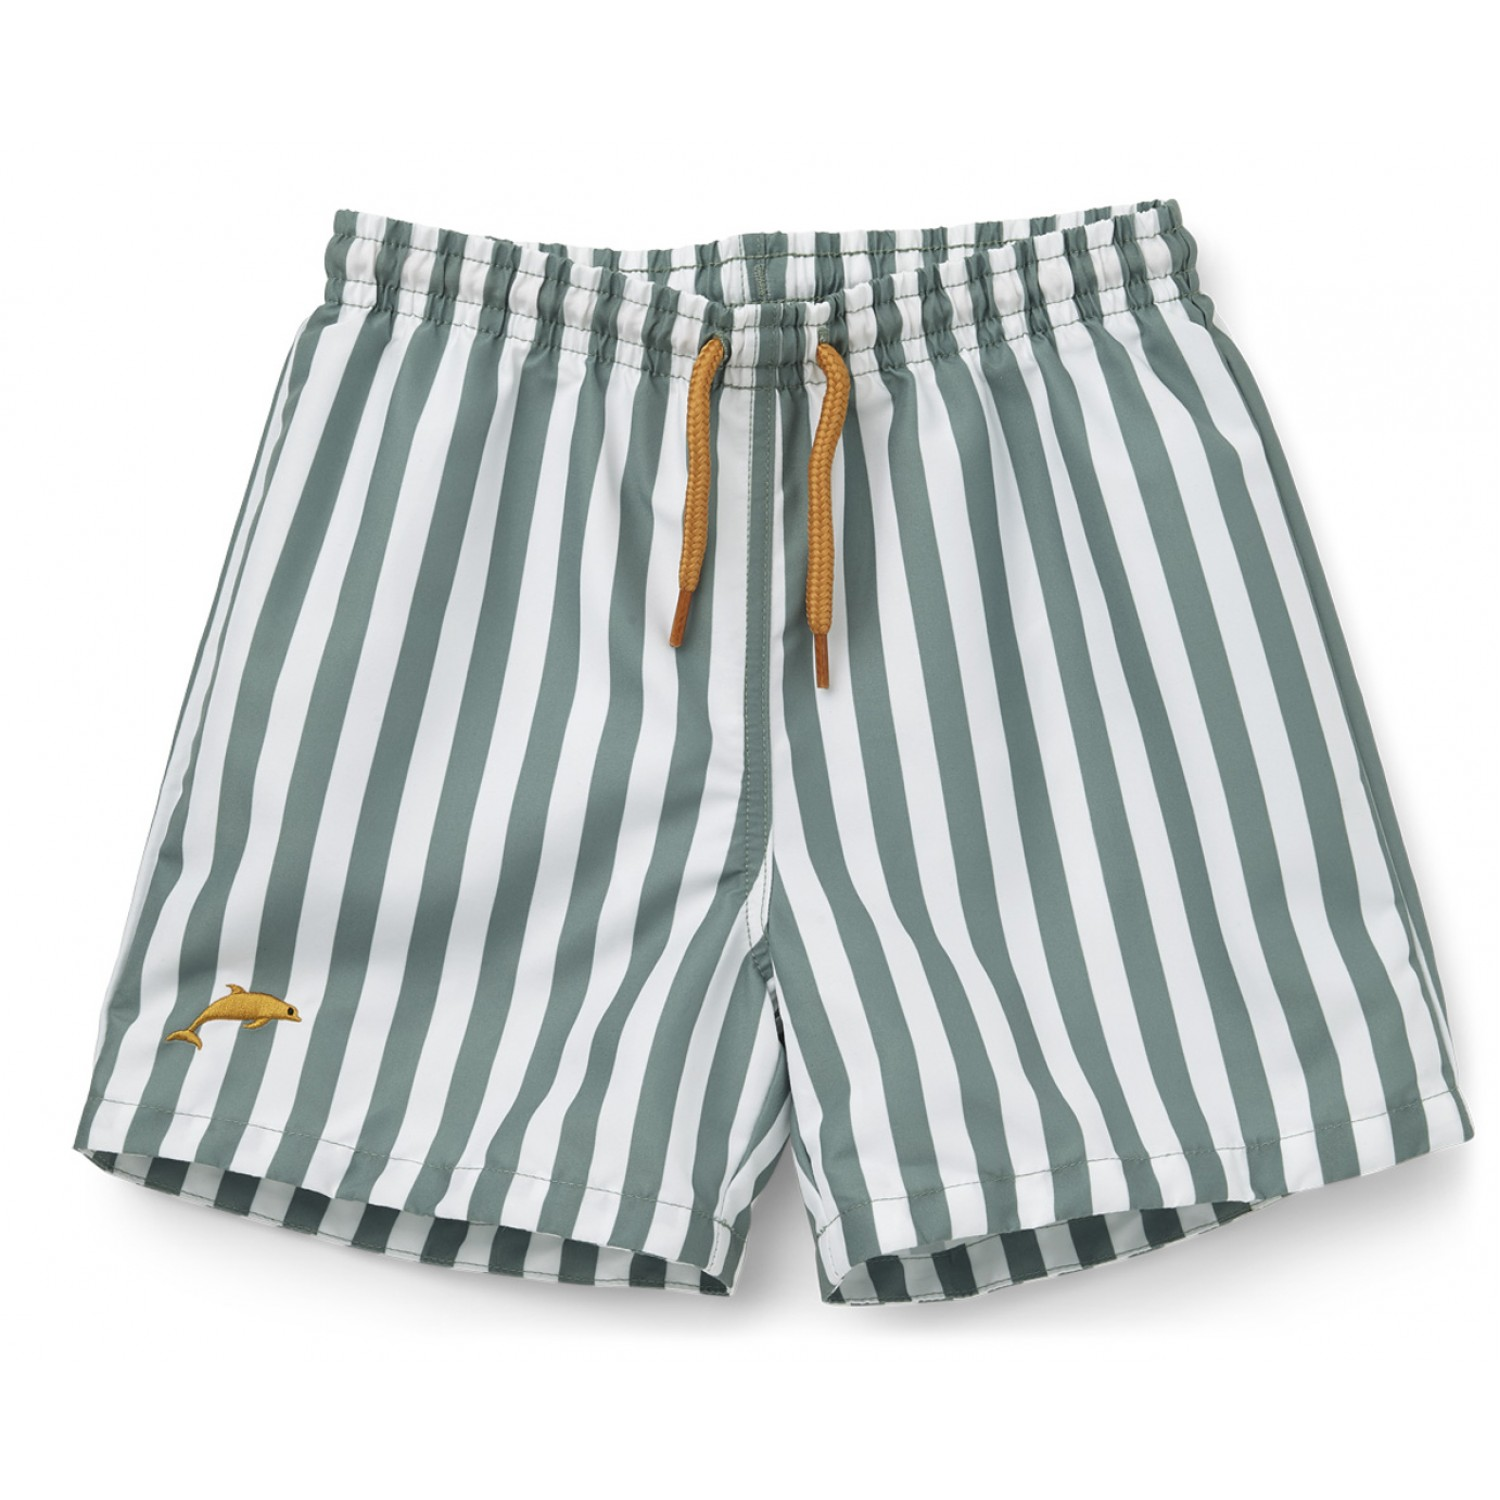 Duke board shorts | Peppermint/White